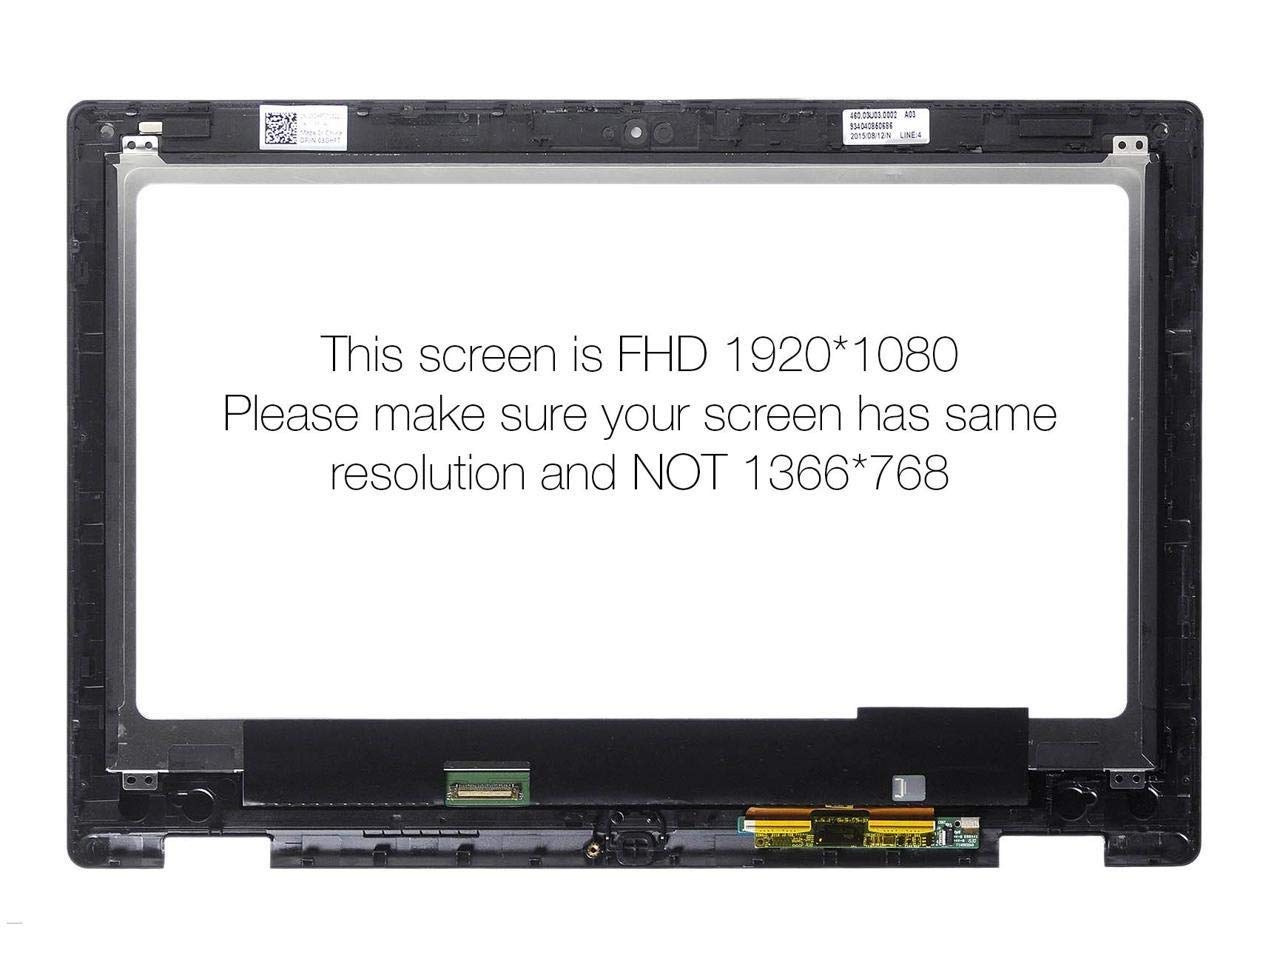 LA-Tronics Replacement Screen for Dell Inspiron 13 7352 7353 FHD 13.3'' IPS LCD Touch Screen Digitizer Assembly by LA-Tronics (Image #2)